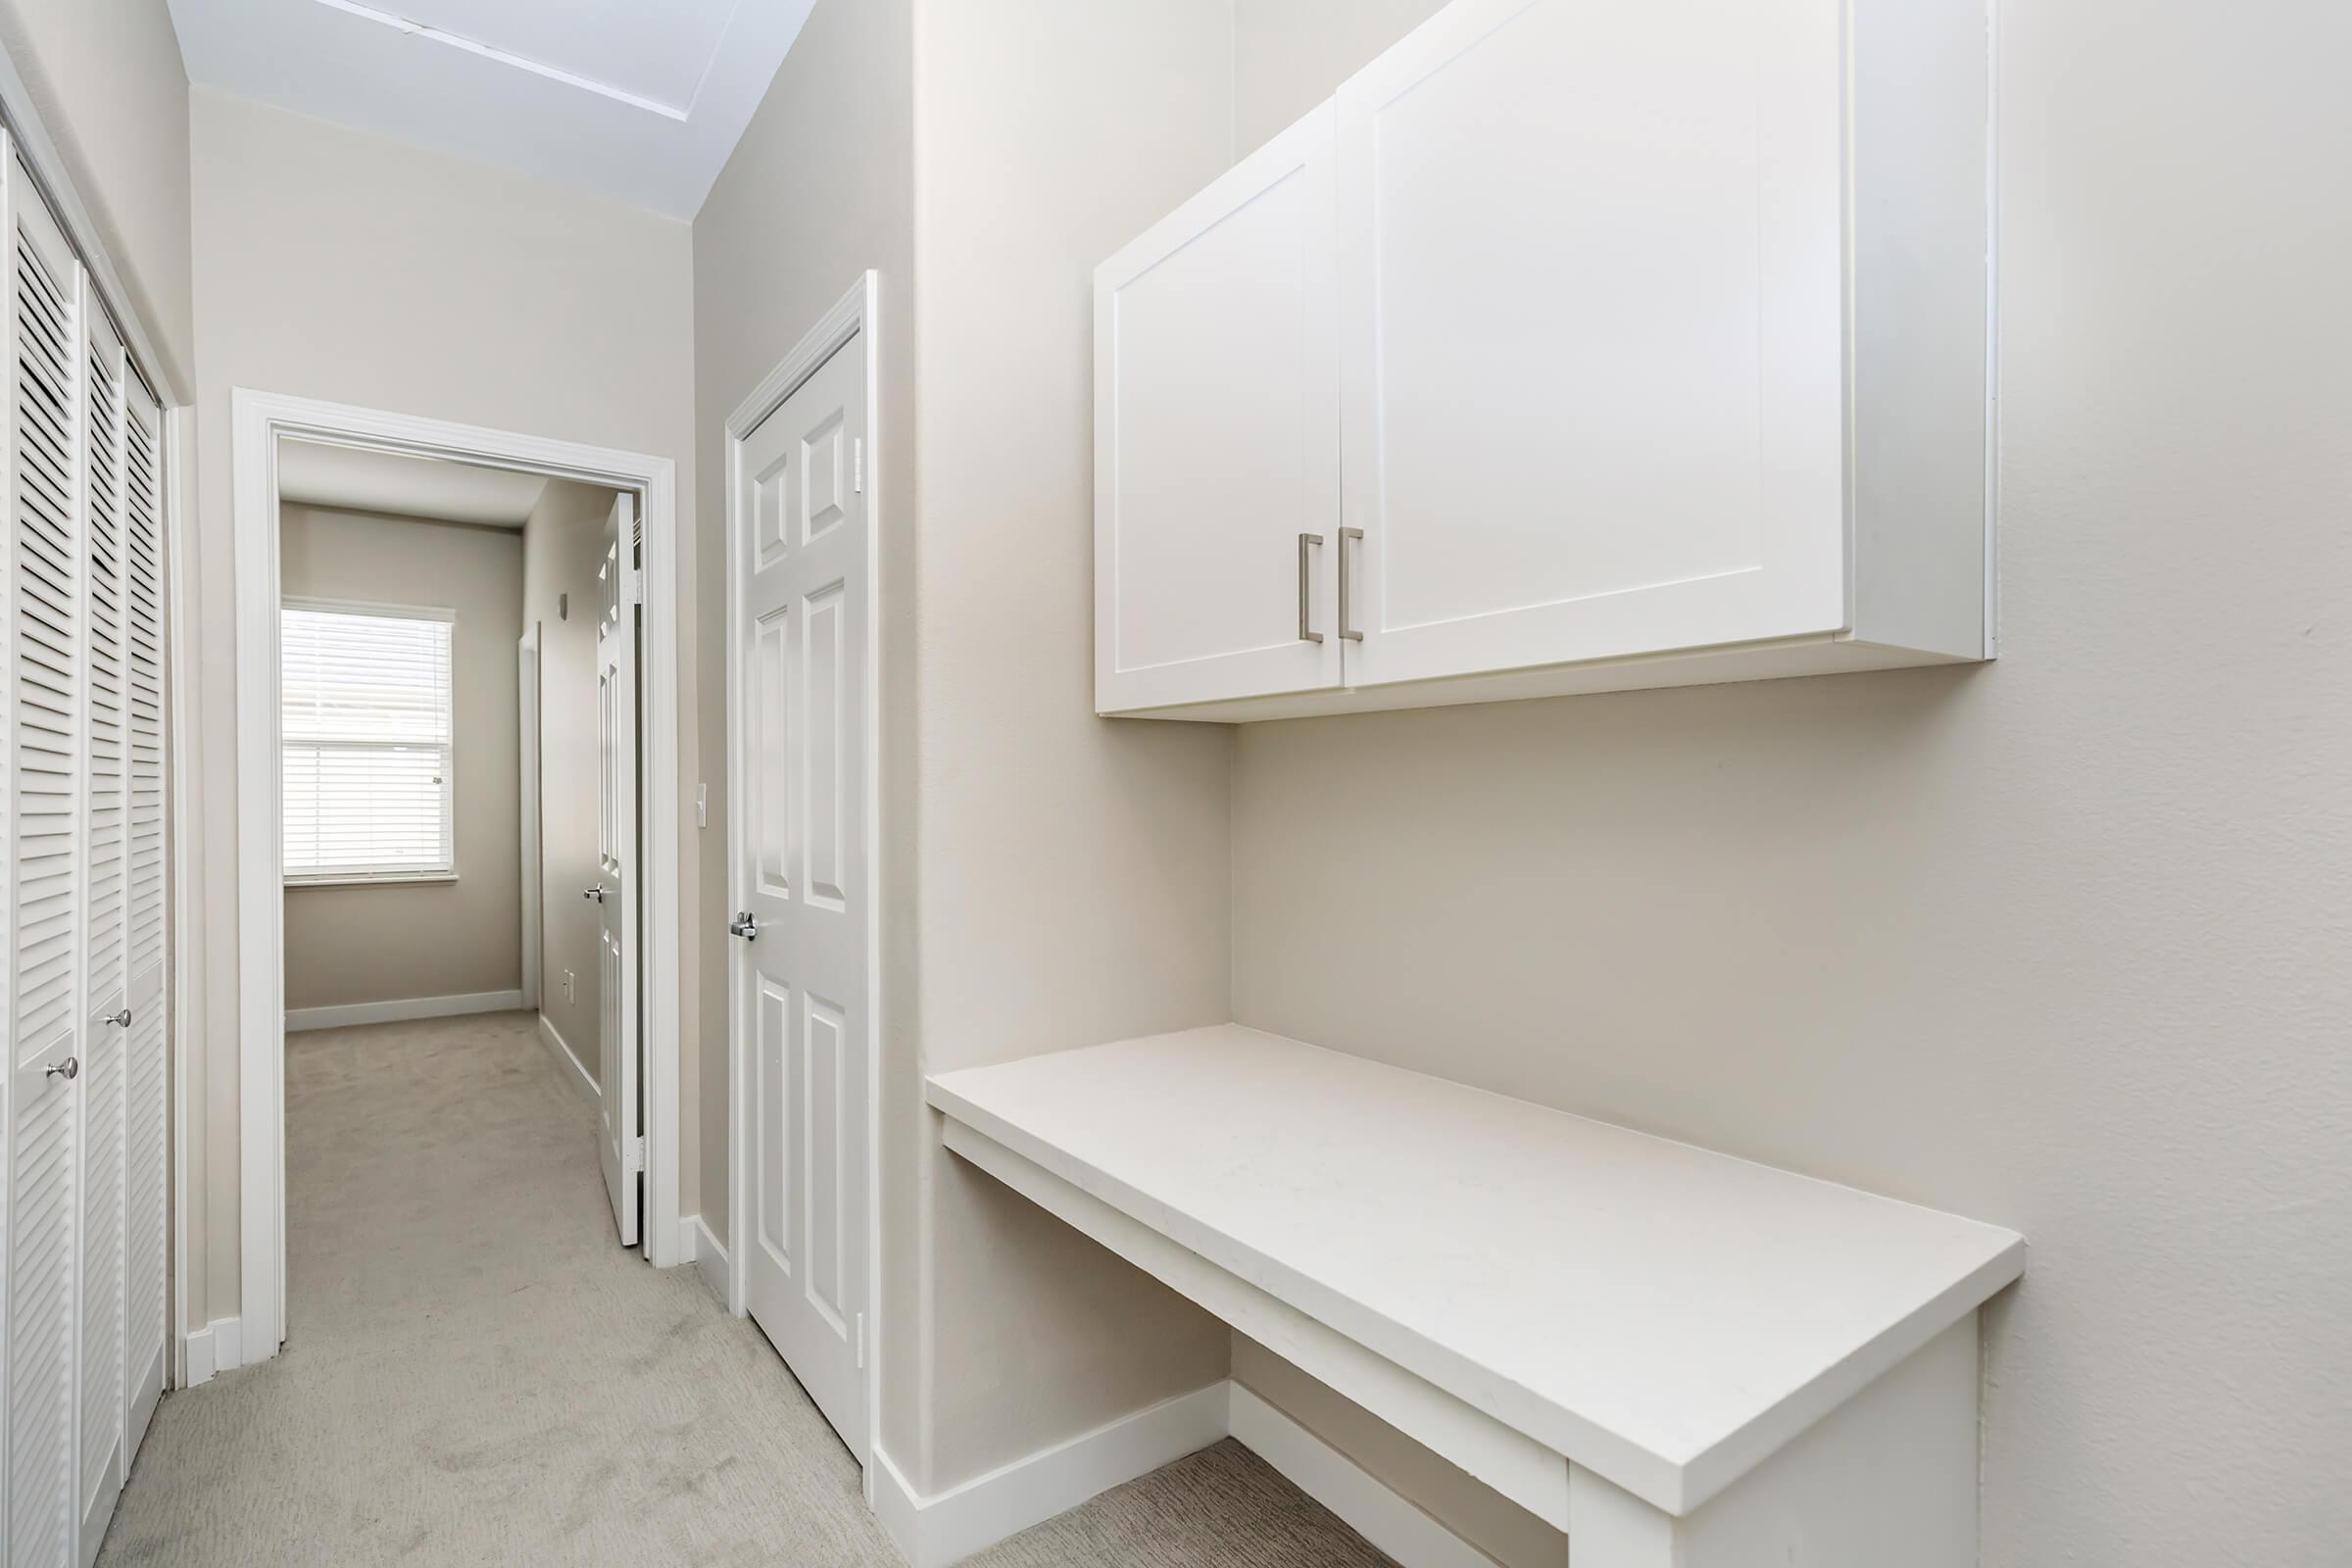 Hallway with cabinets